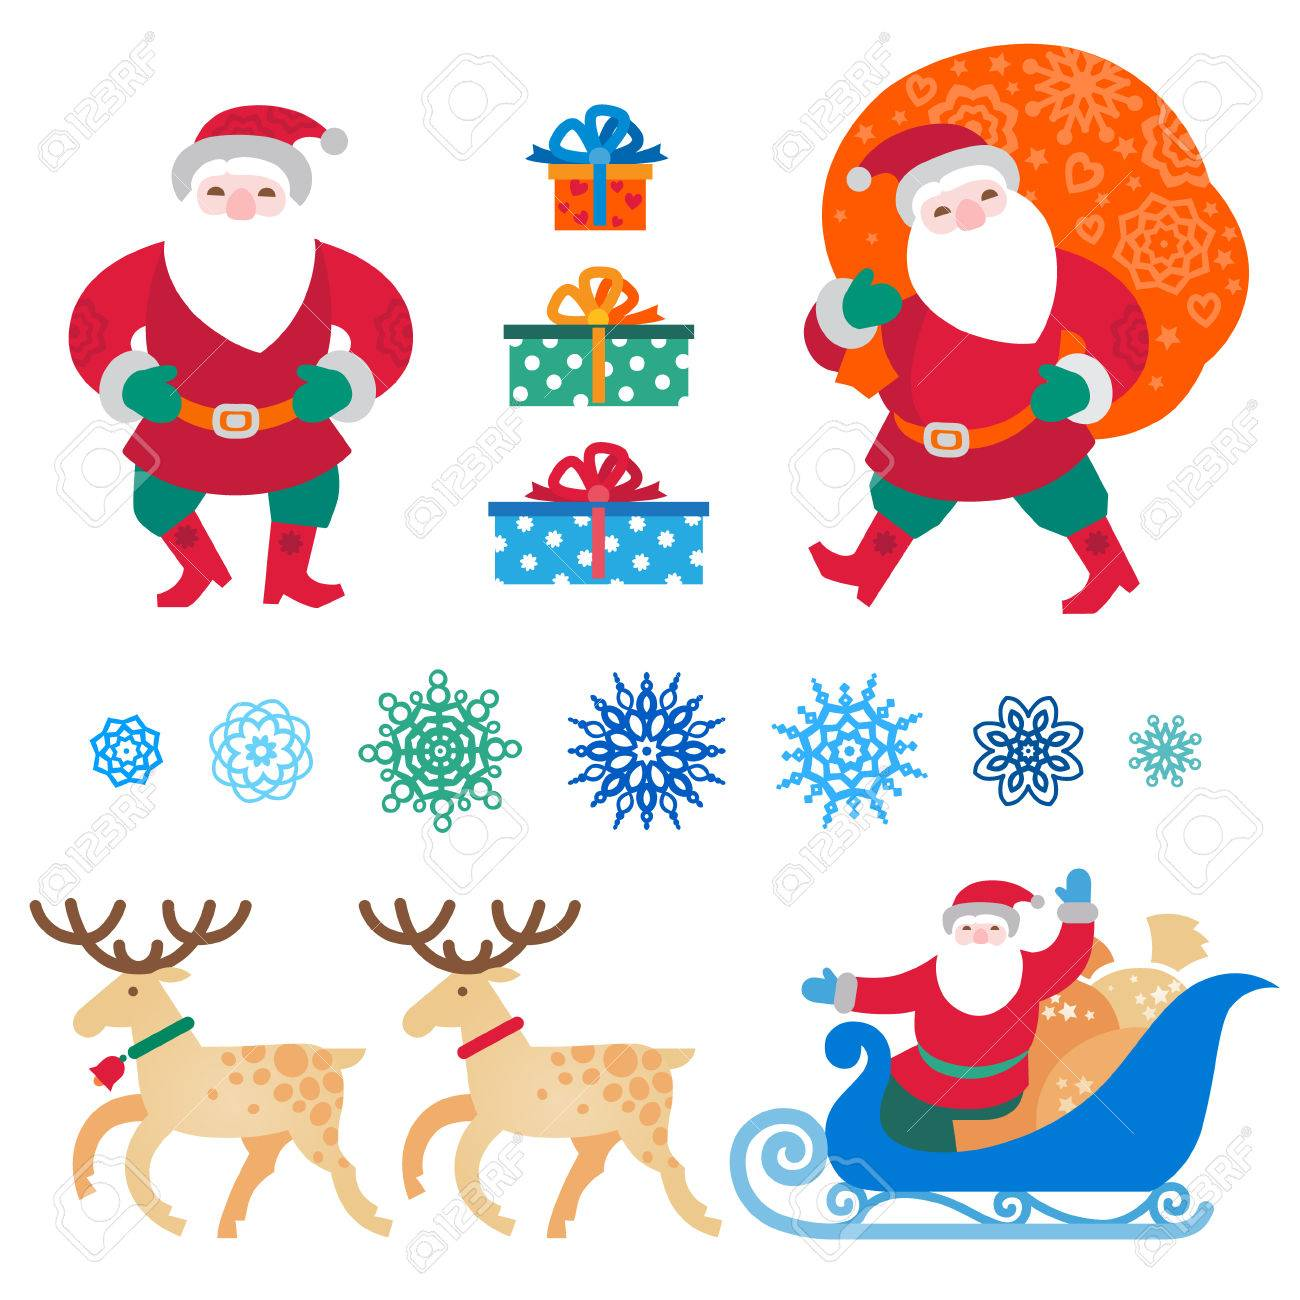 Christmas Vectors.Bright Set Of Christmas Vector Elements Winter Holidays Icons